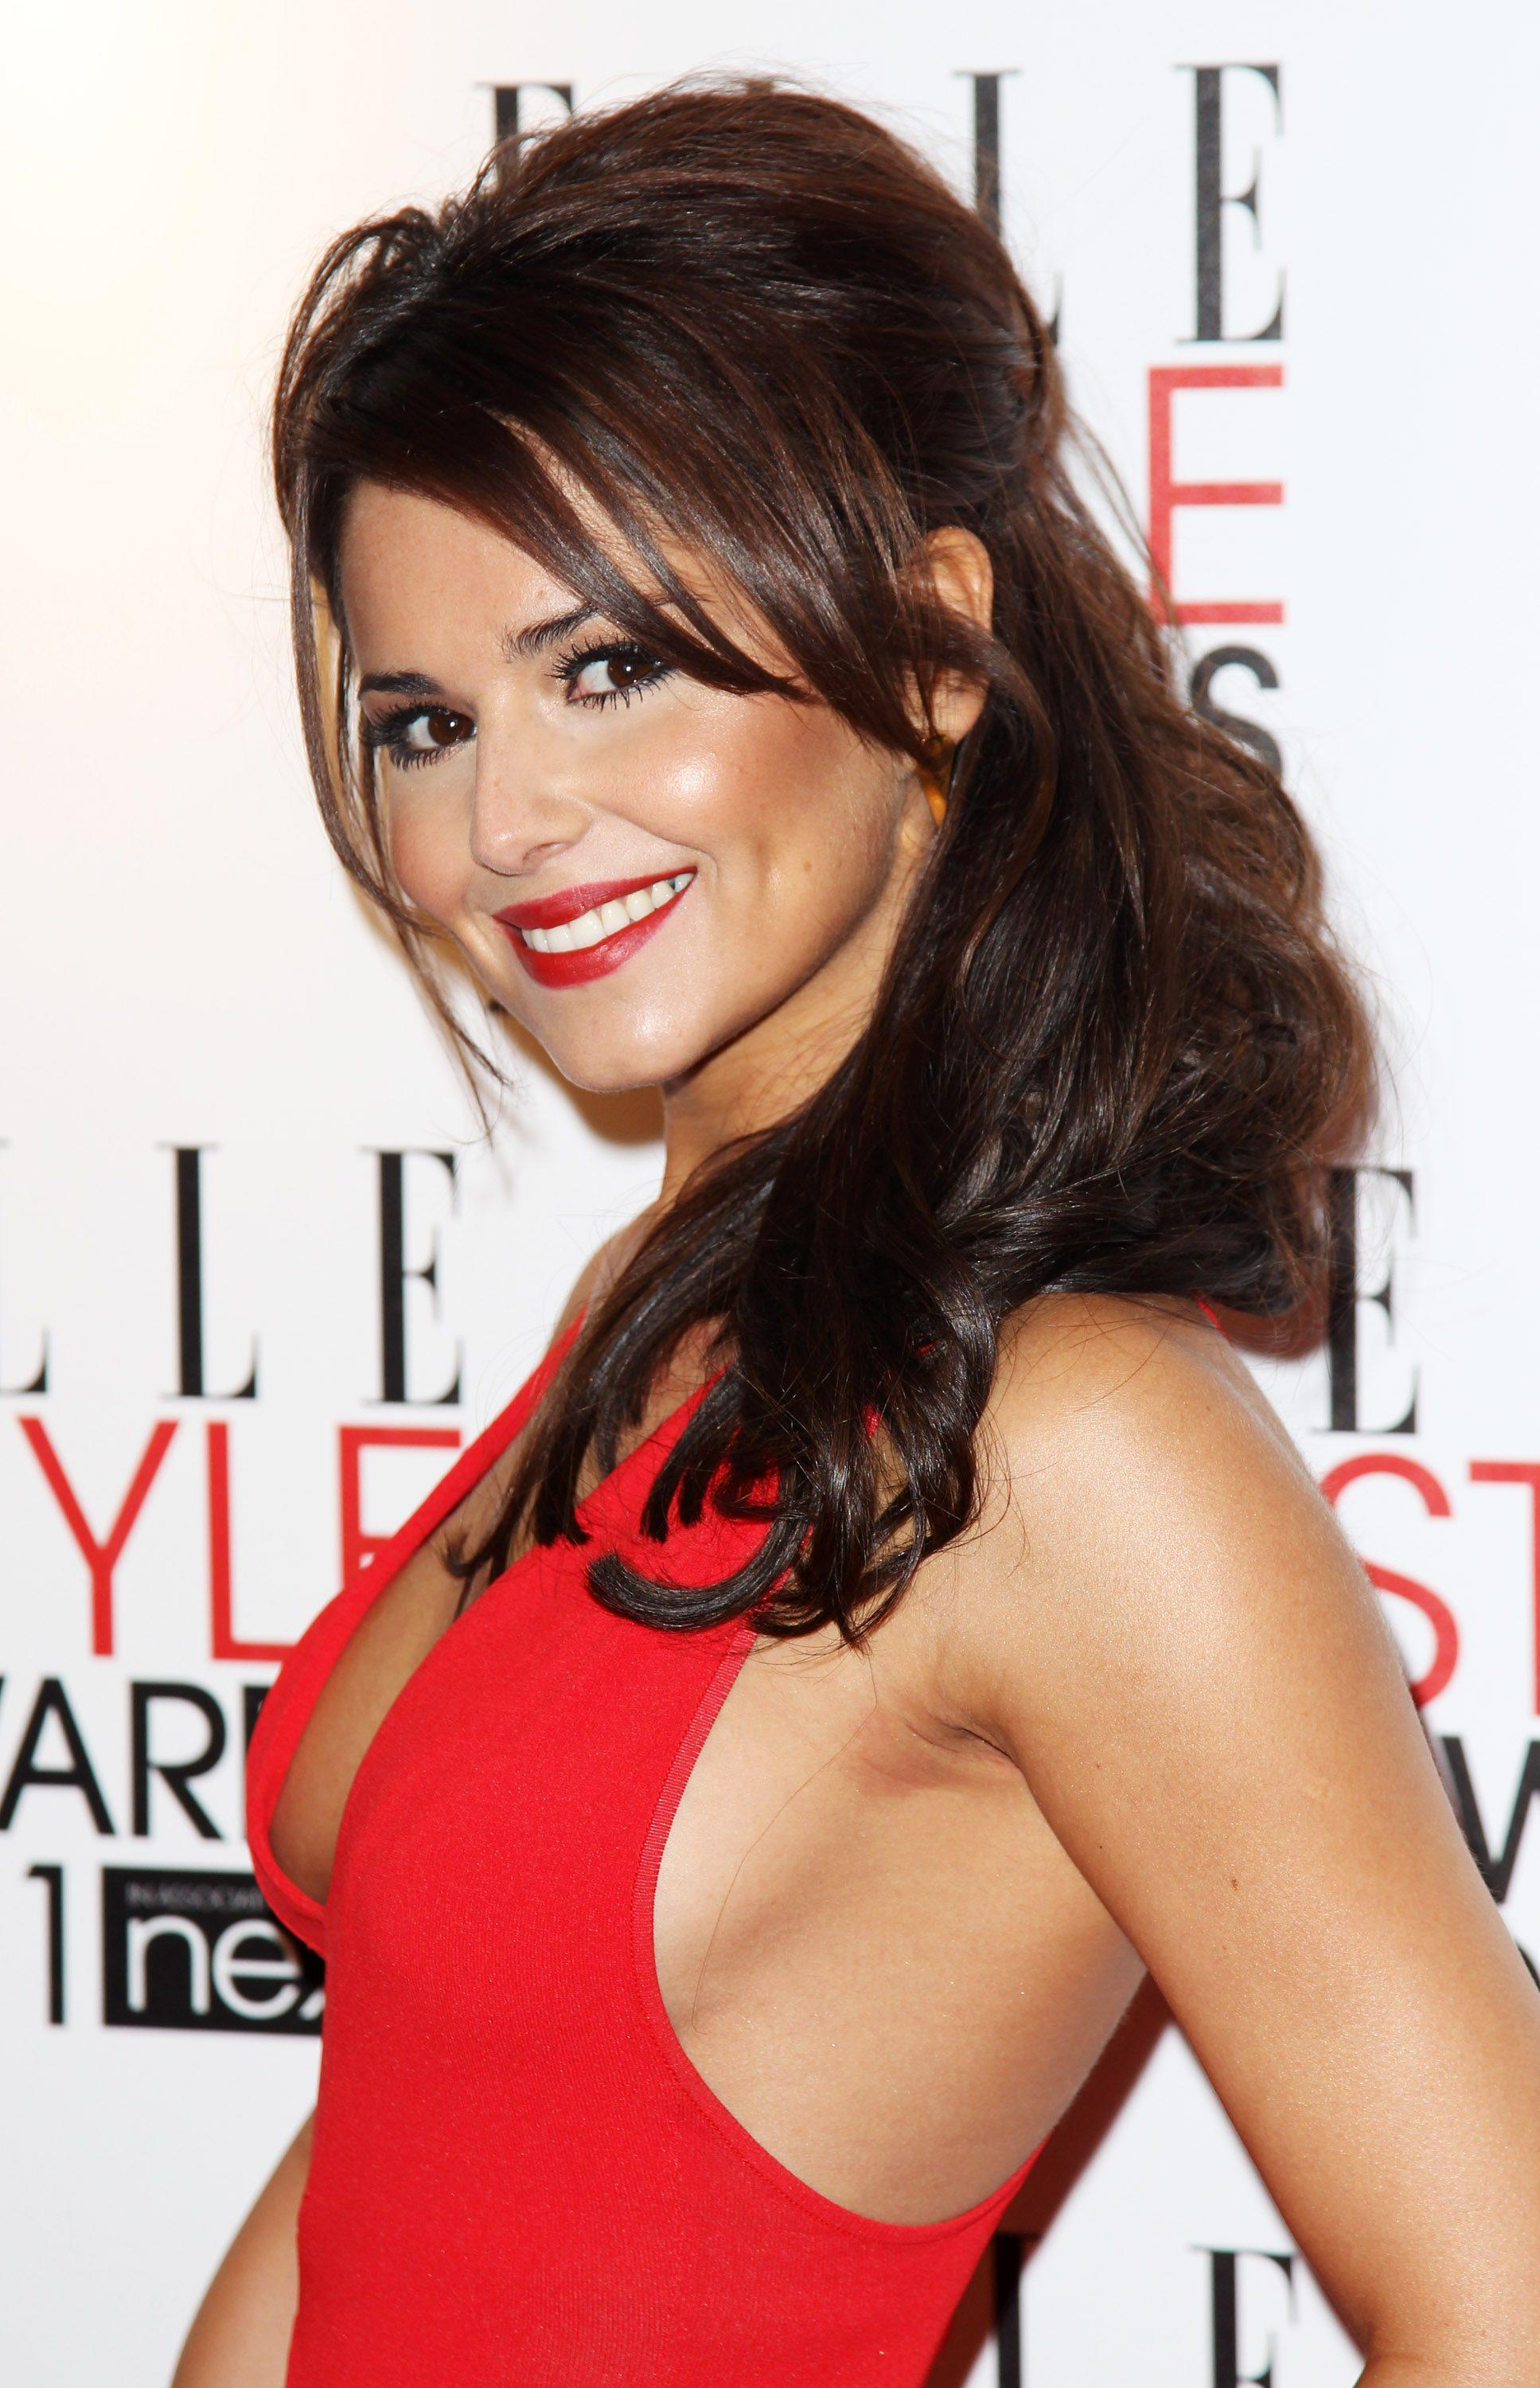 cheryl cole red dress HD Wallpaper